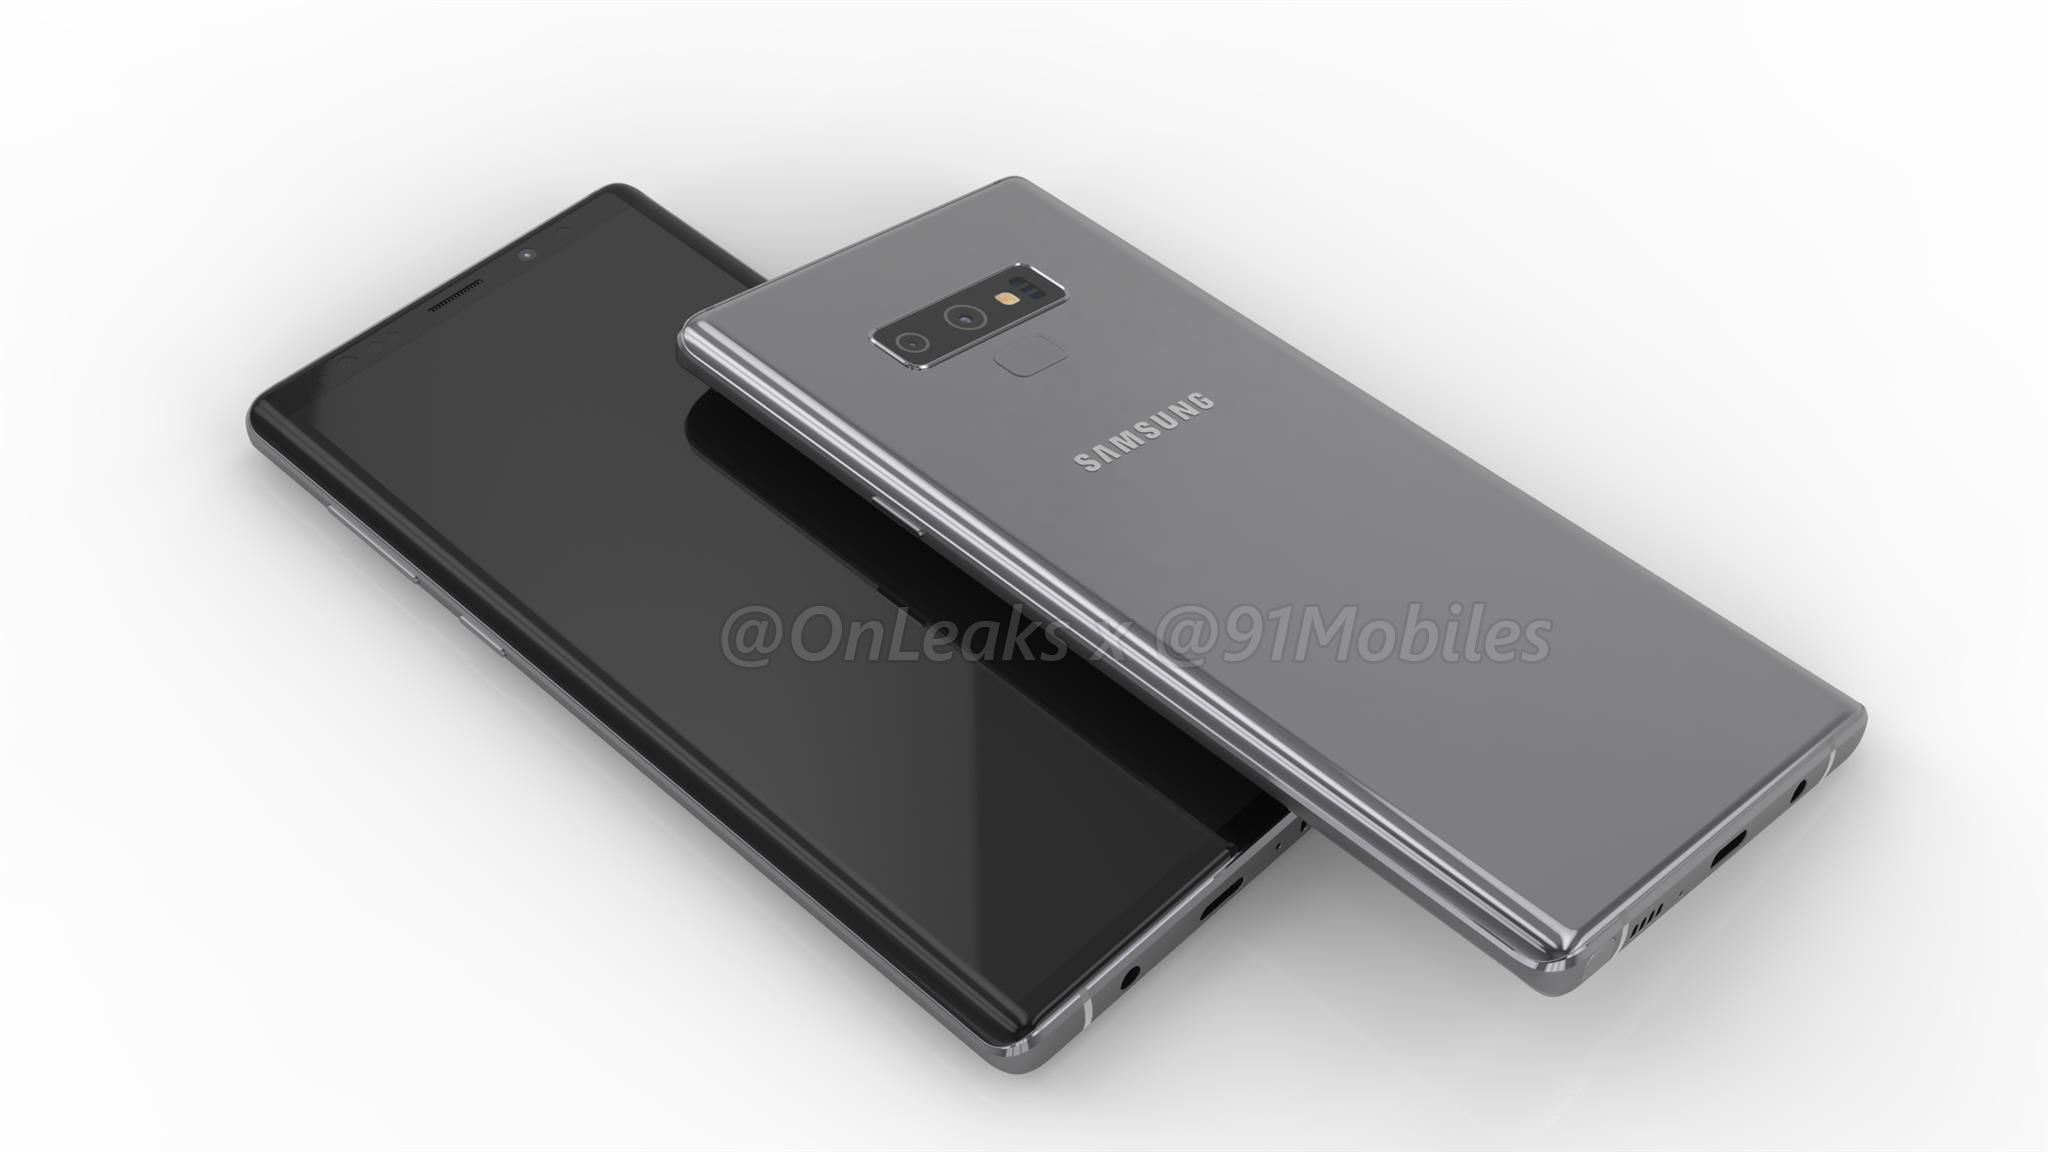 Samsung Galaxy Note 9 render - 91mobiles (11)